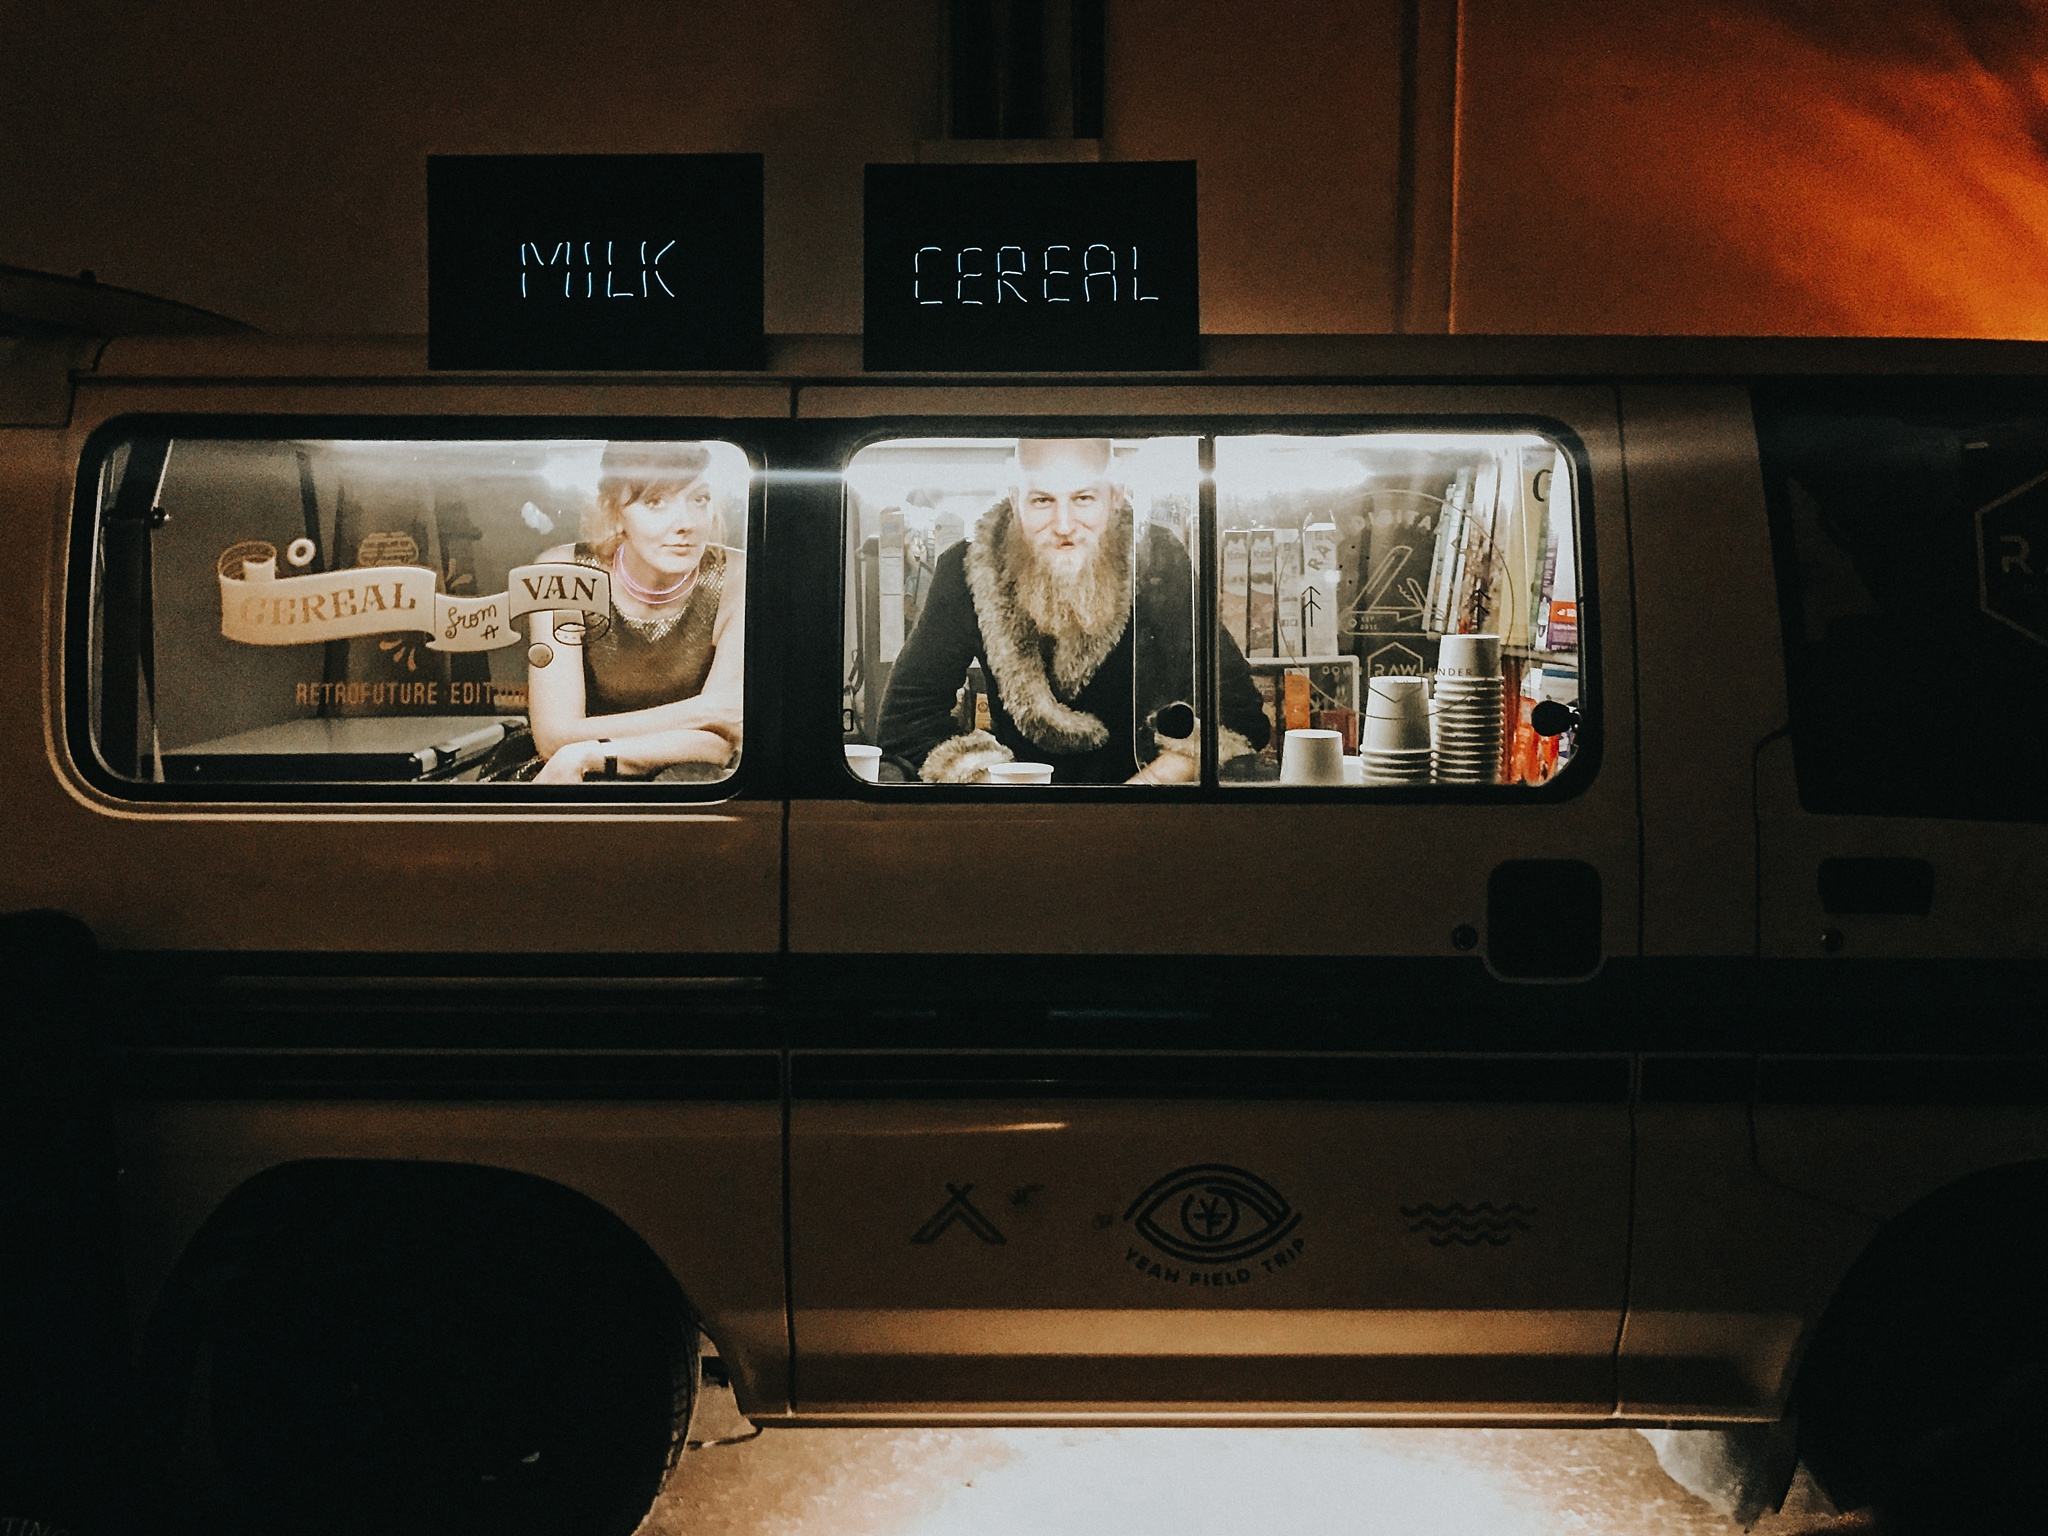 Every good party should have a cereal van.